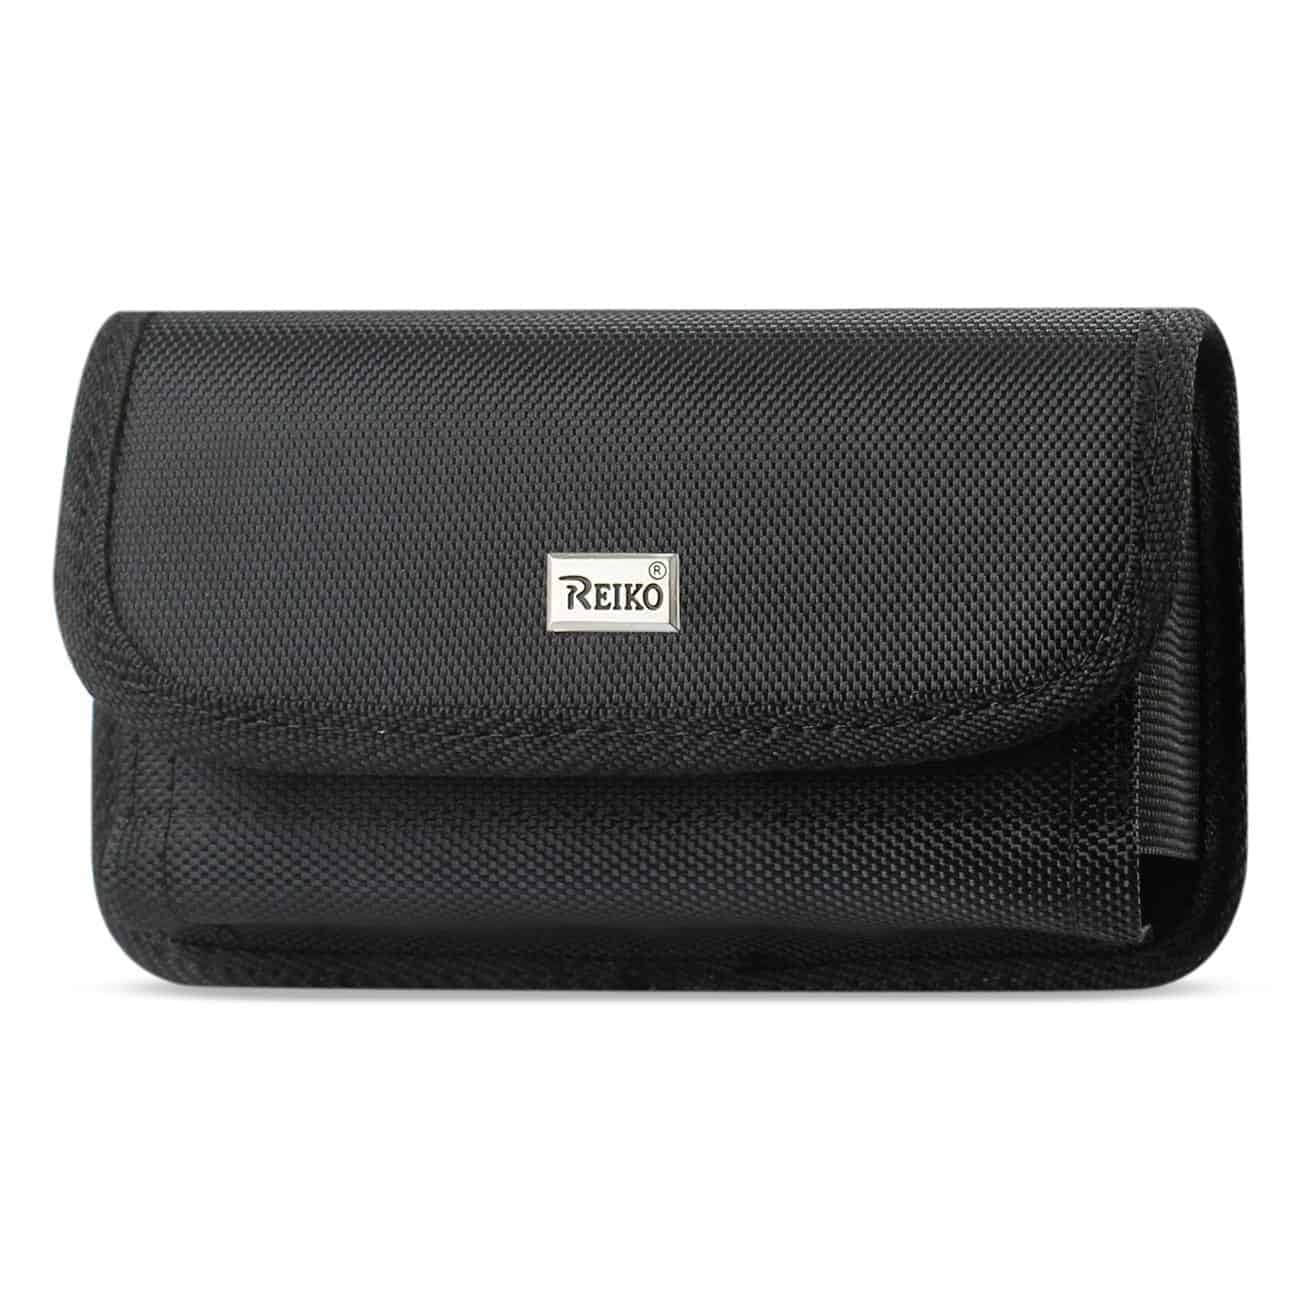 Horizontal Rugged Pouch With Velcro In Black (6.4X3.5X0.7 Inches)